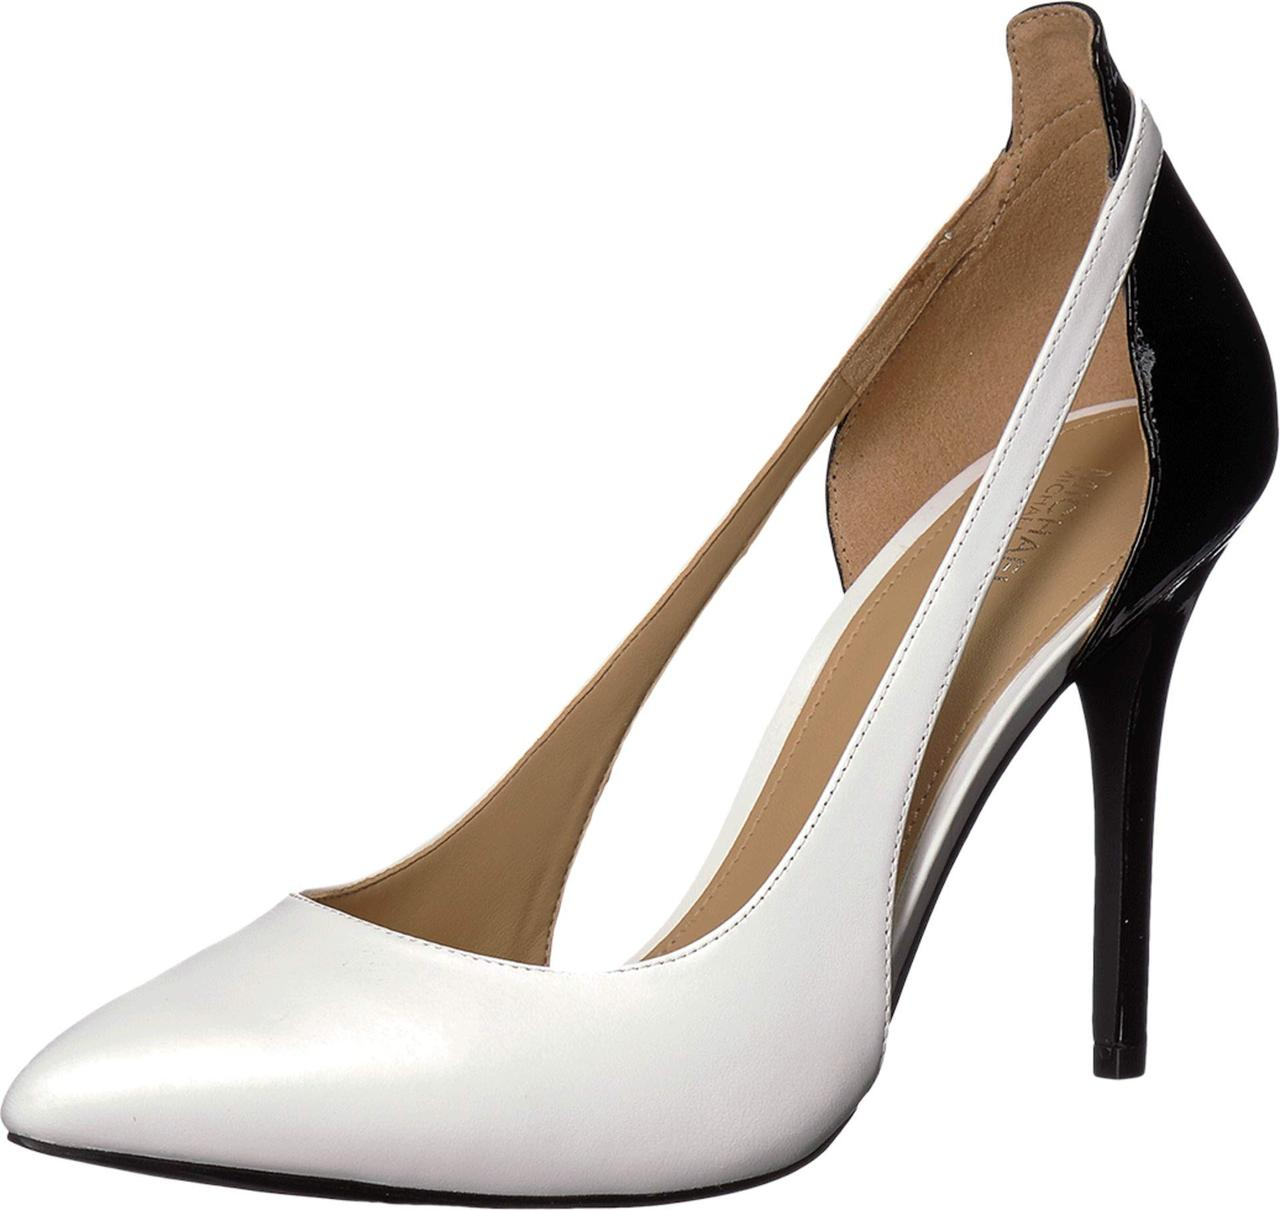 c5660717d209 Туфли на каблуке (Оригинал) MICHAEL Michael Kors Cersei Pump Optic  White Black Vachetta ...